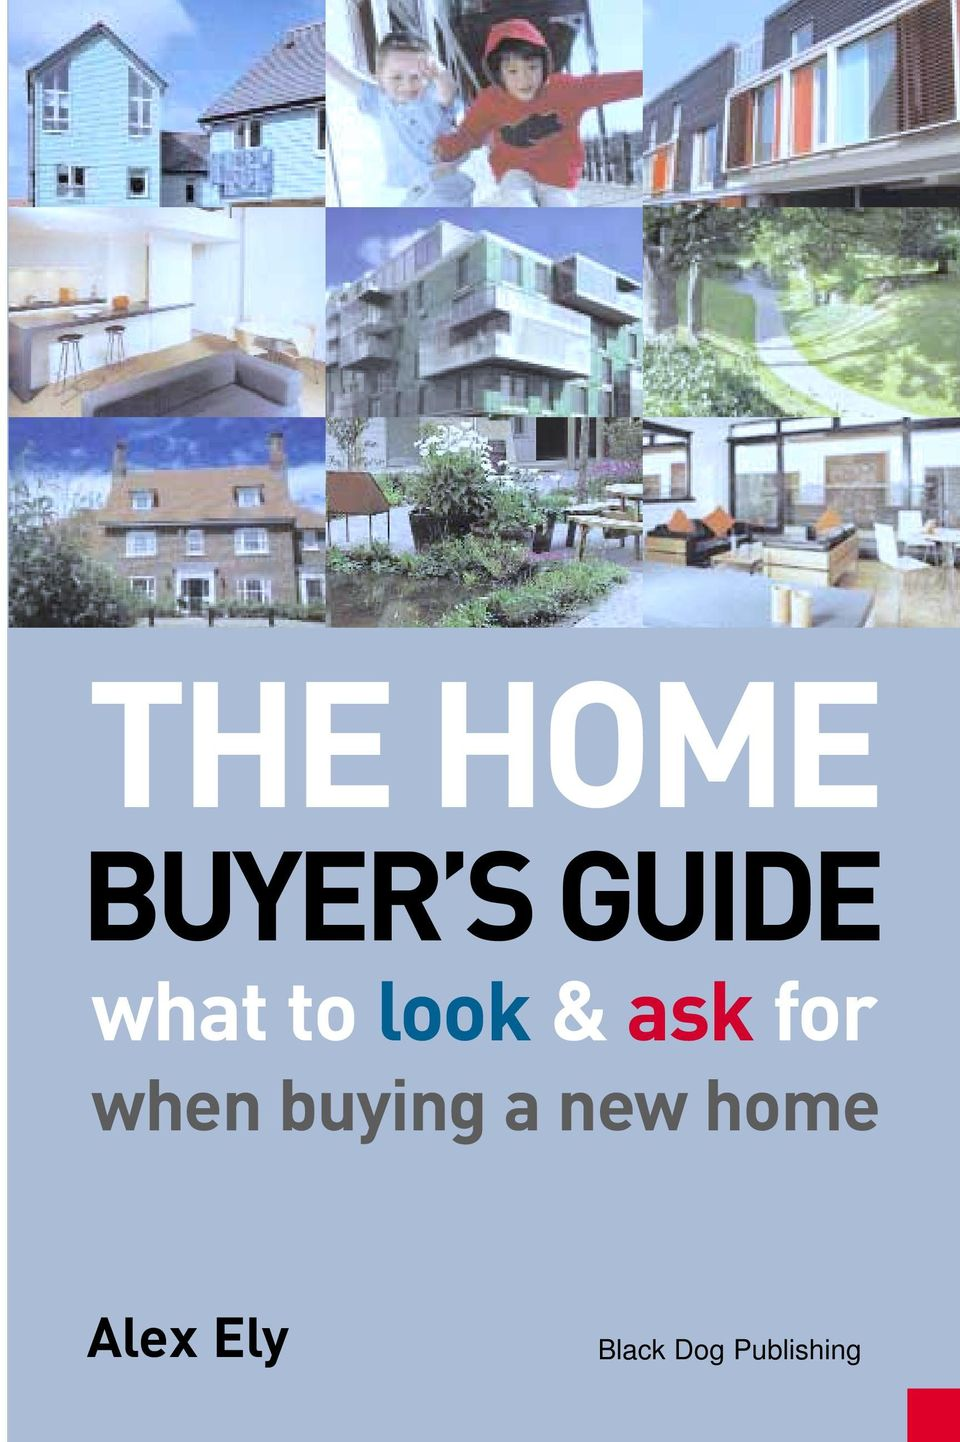 when buying a new home